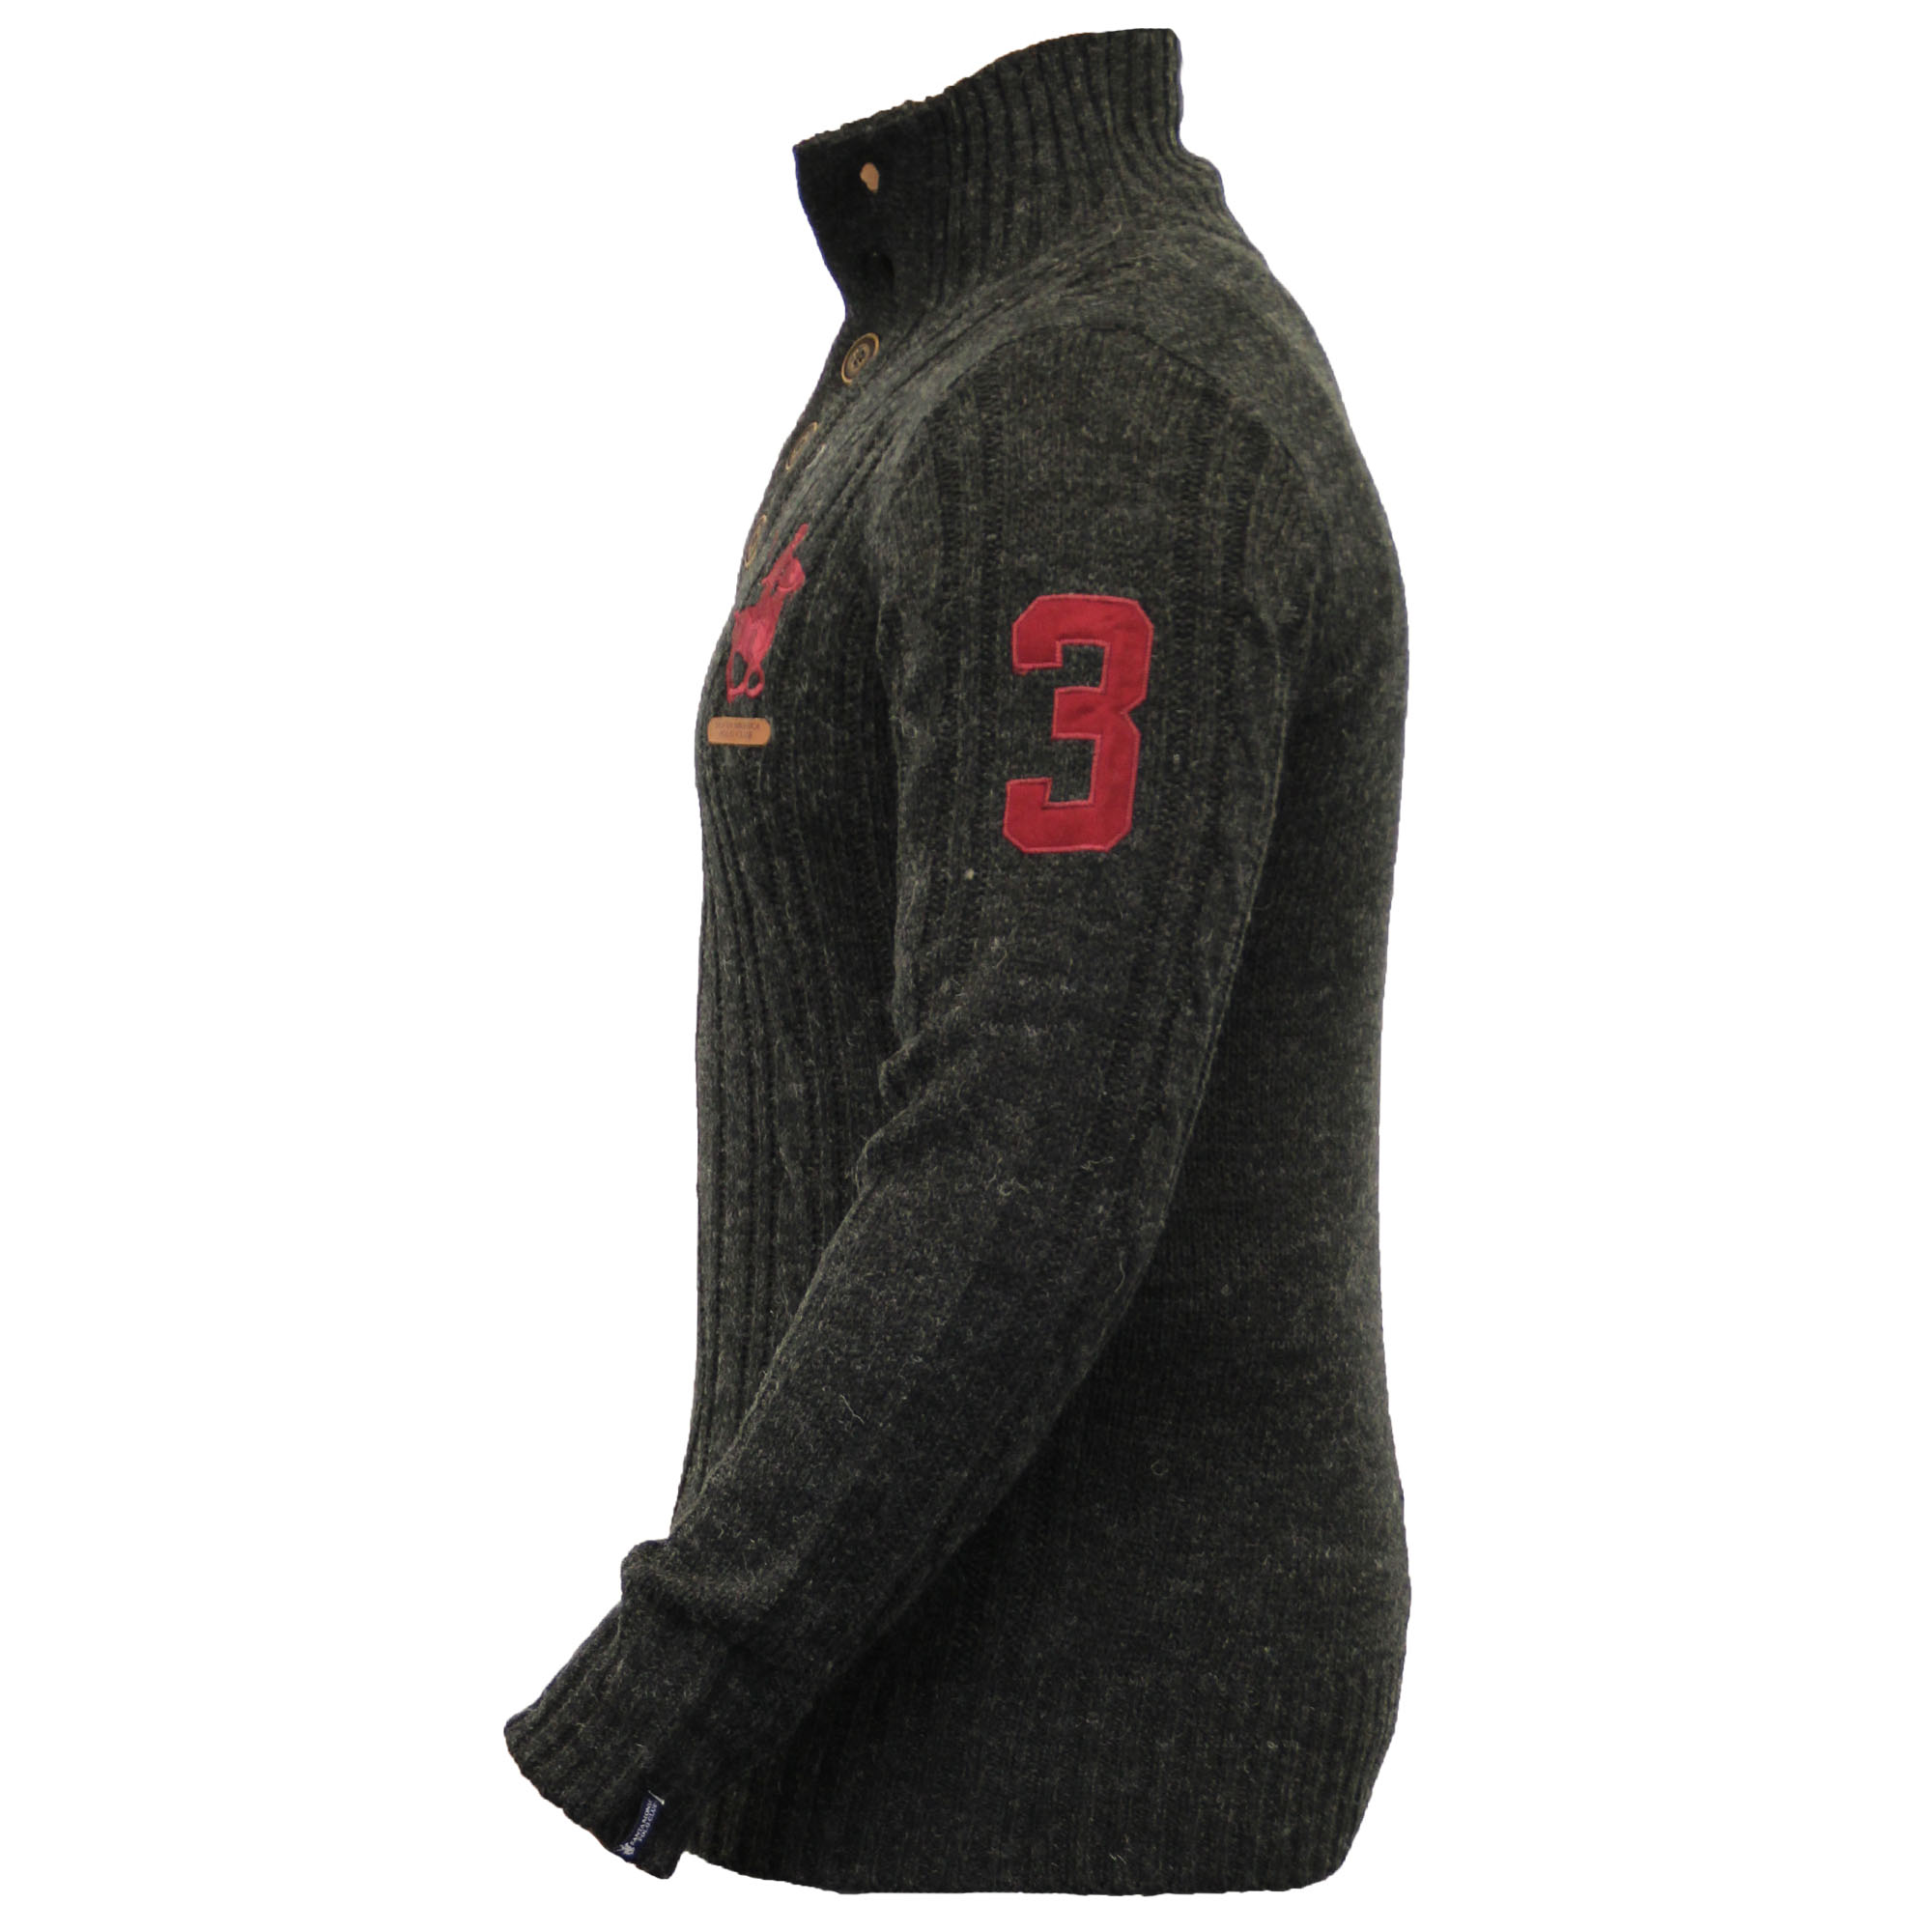 Mens-Wool-Mix-Jumpers-Santa-Monica-Cable-Knitted-Jacquard-Sweater-Pullover-New thumbnail 3